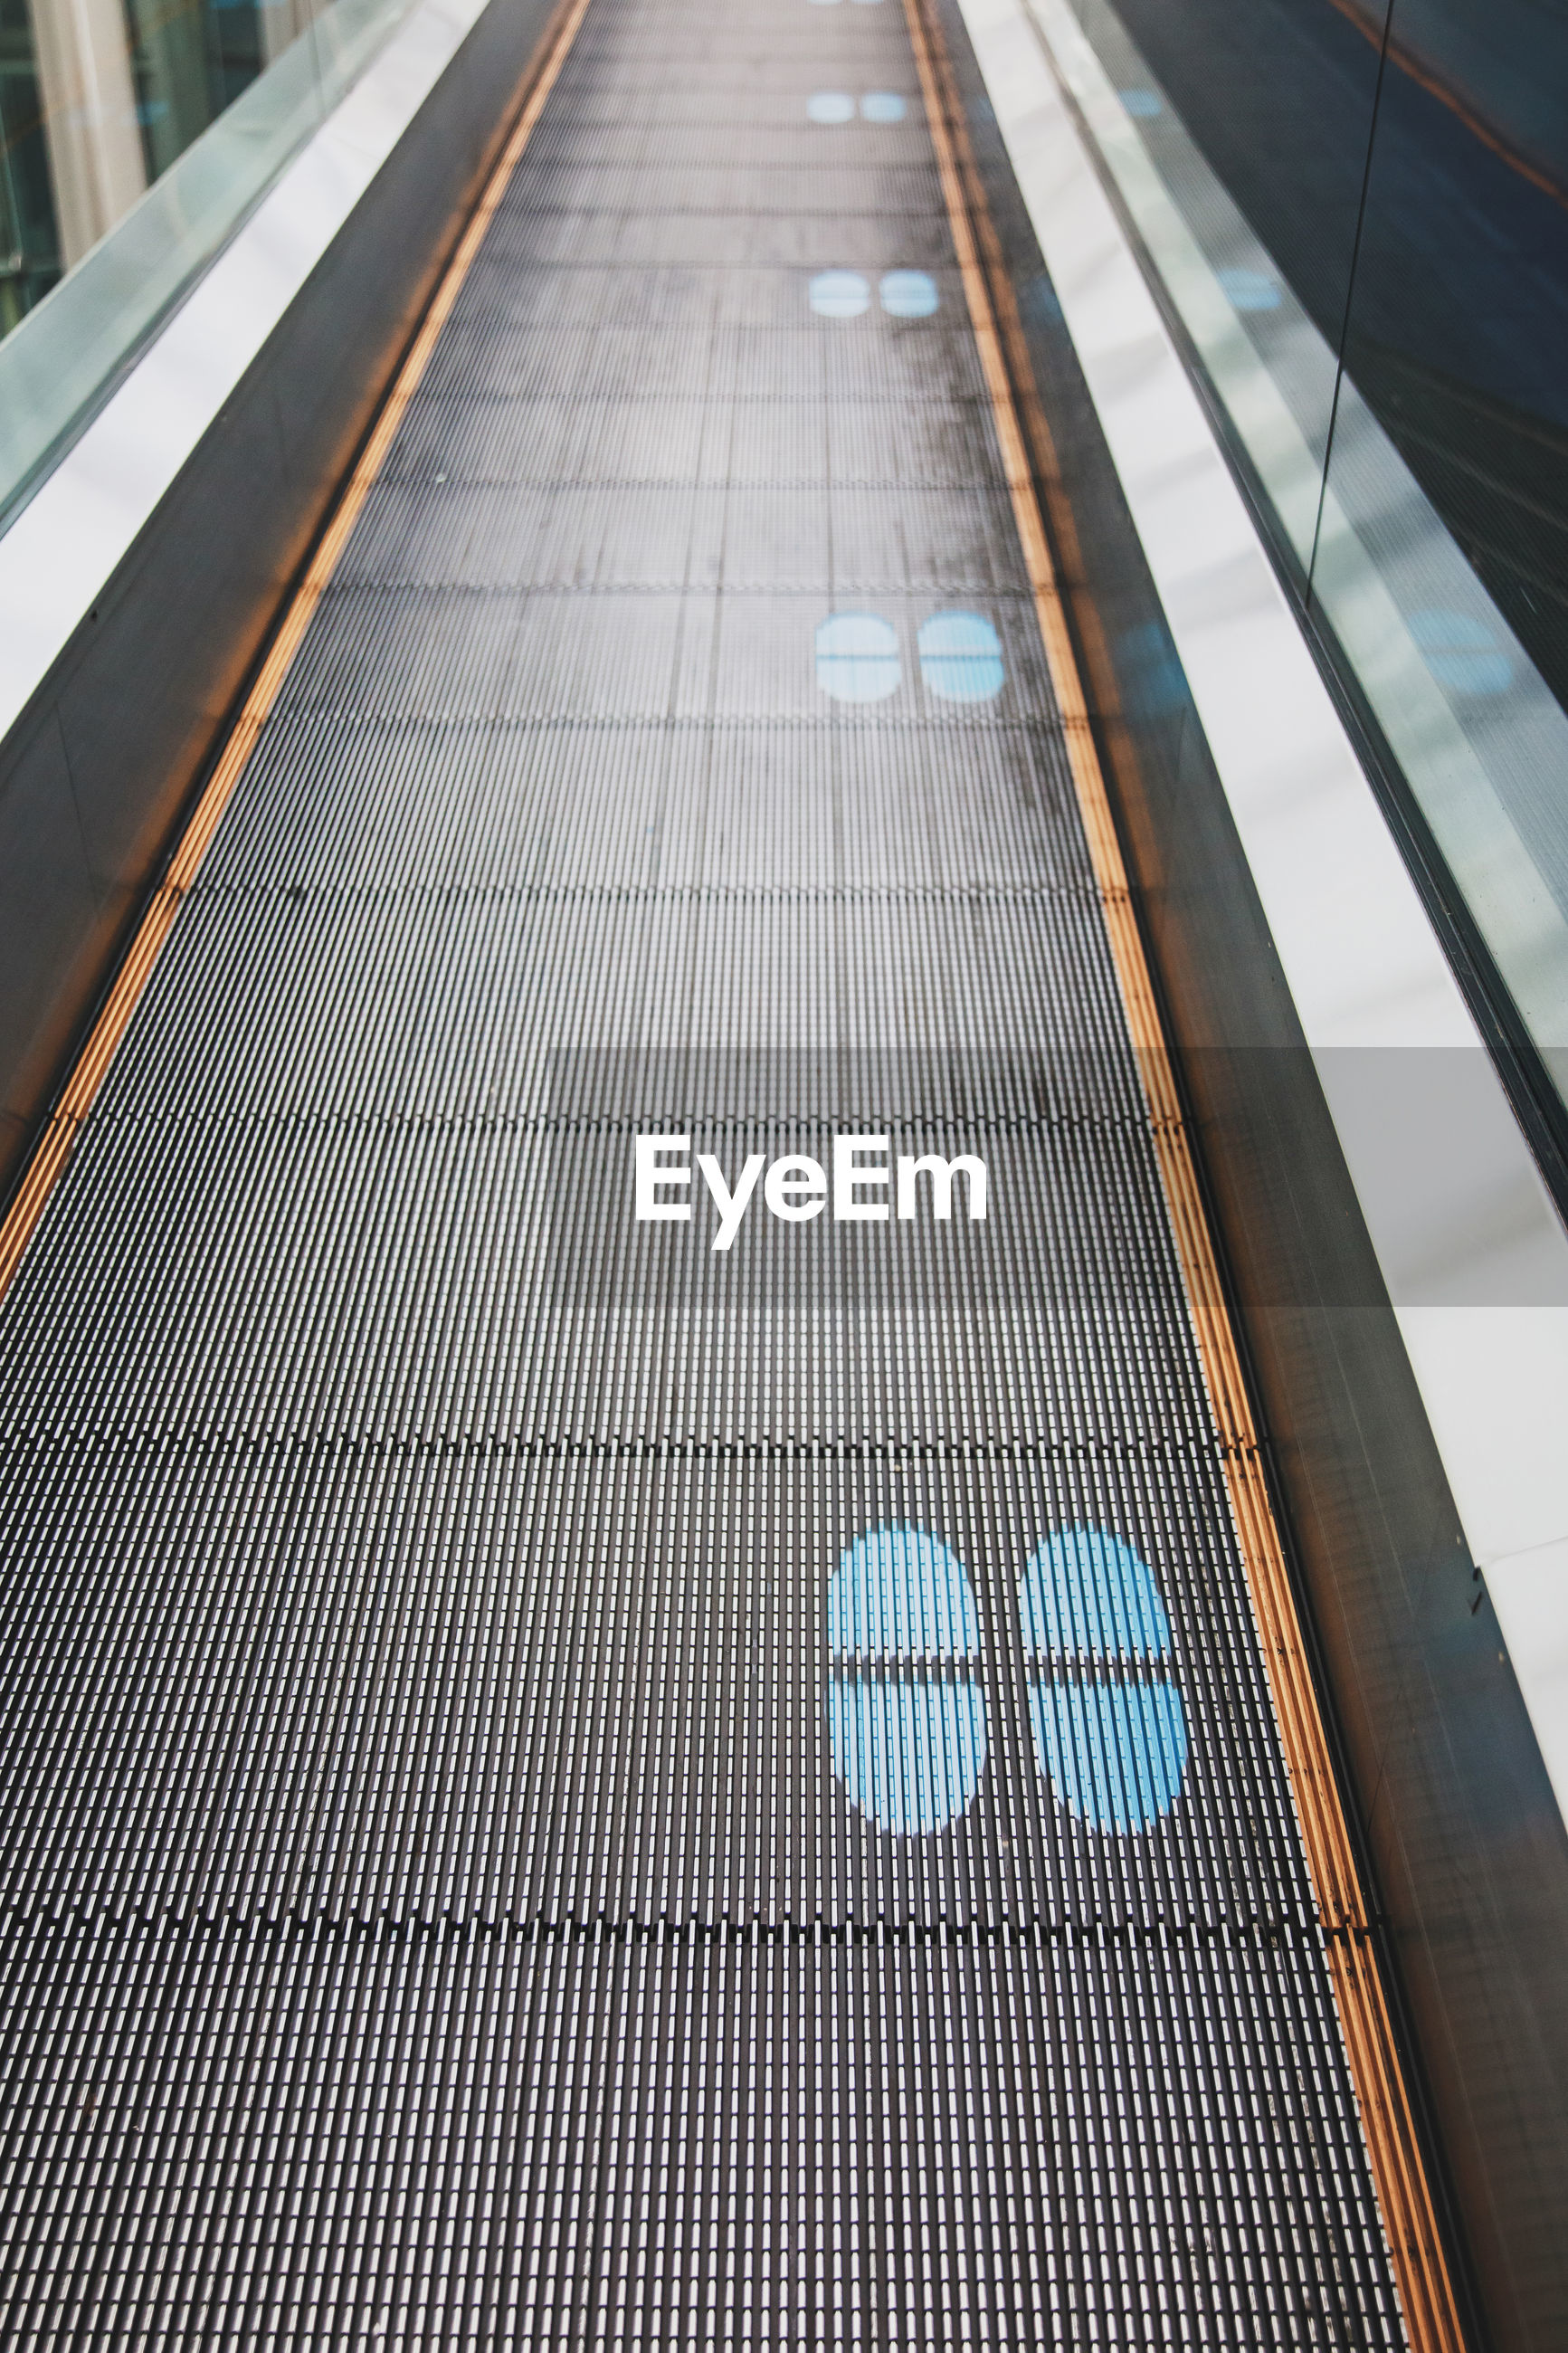 Footprints printed on the escalator for social distancing